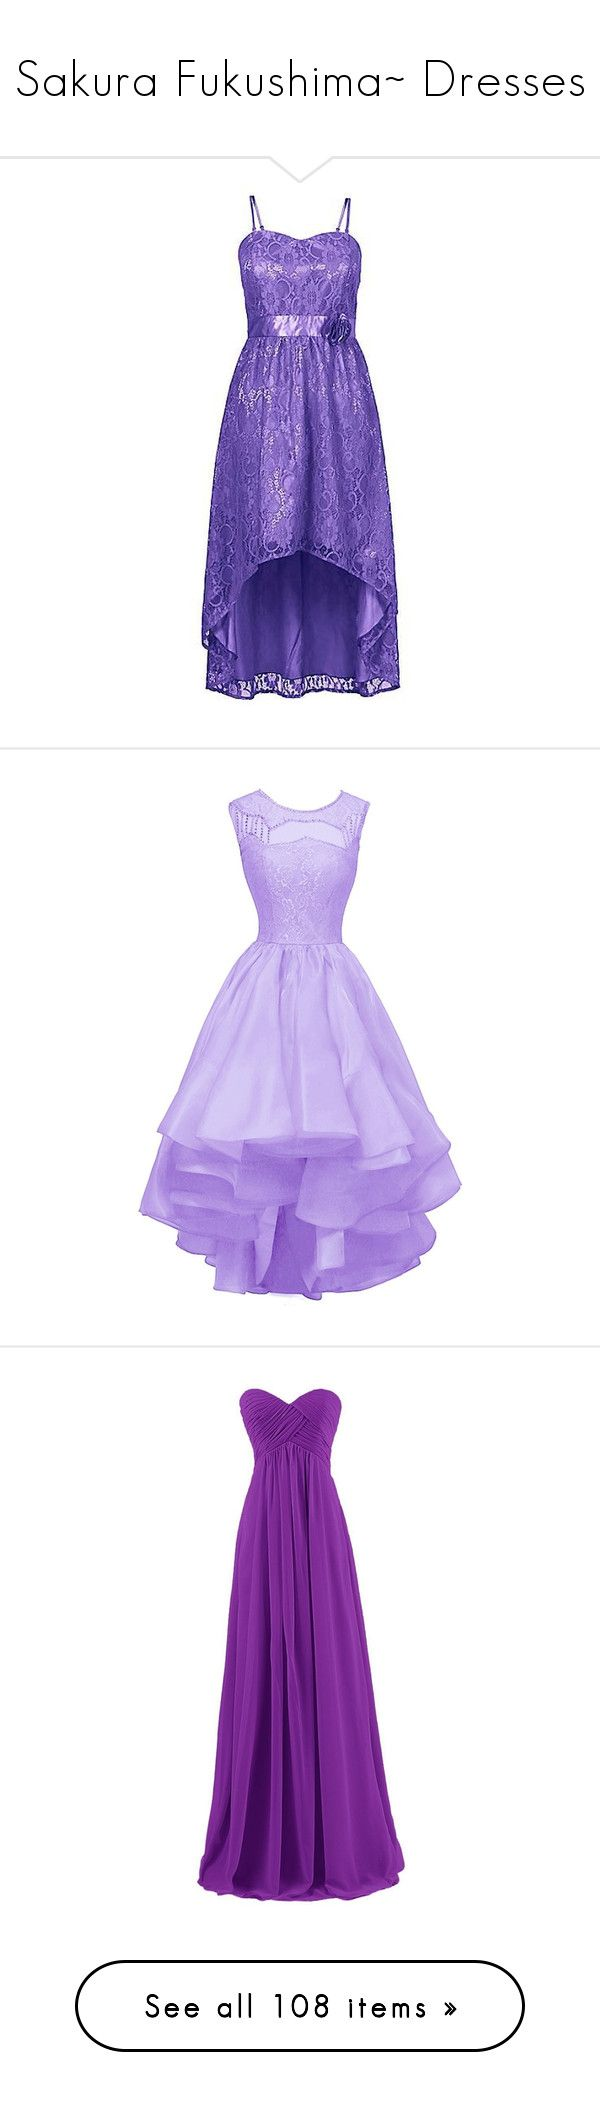 """Sakura Fukushima~ Dresses"" by tabithahallows ❤ liked on Polyvore featuring dresses, lace dress, purple lace cocktail dress, purple cocktail dresses, seashell dress, lace cocktail dress, short dresses, vestidos, short purple dresses and evening dresses"